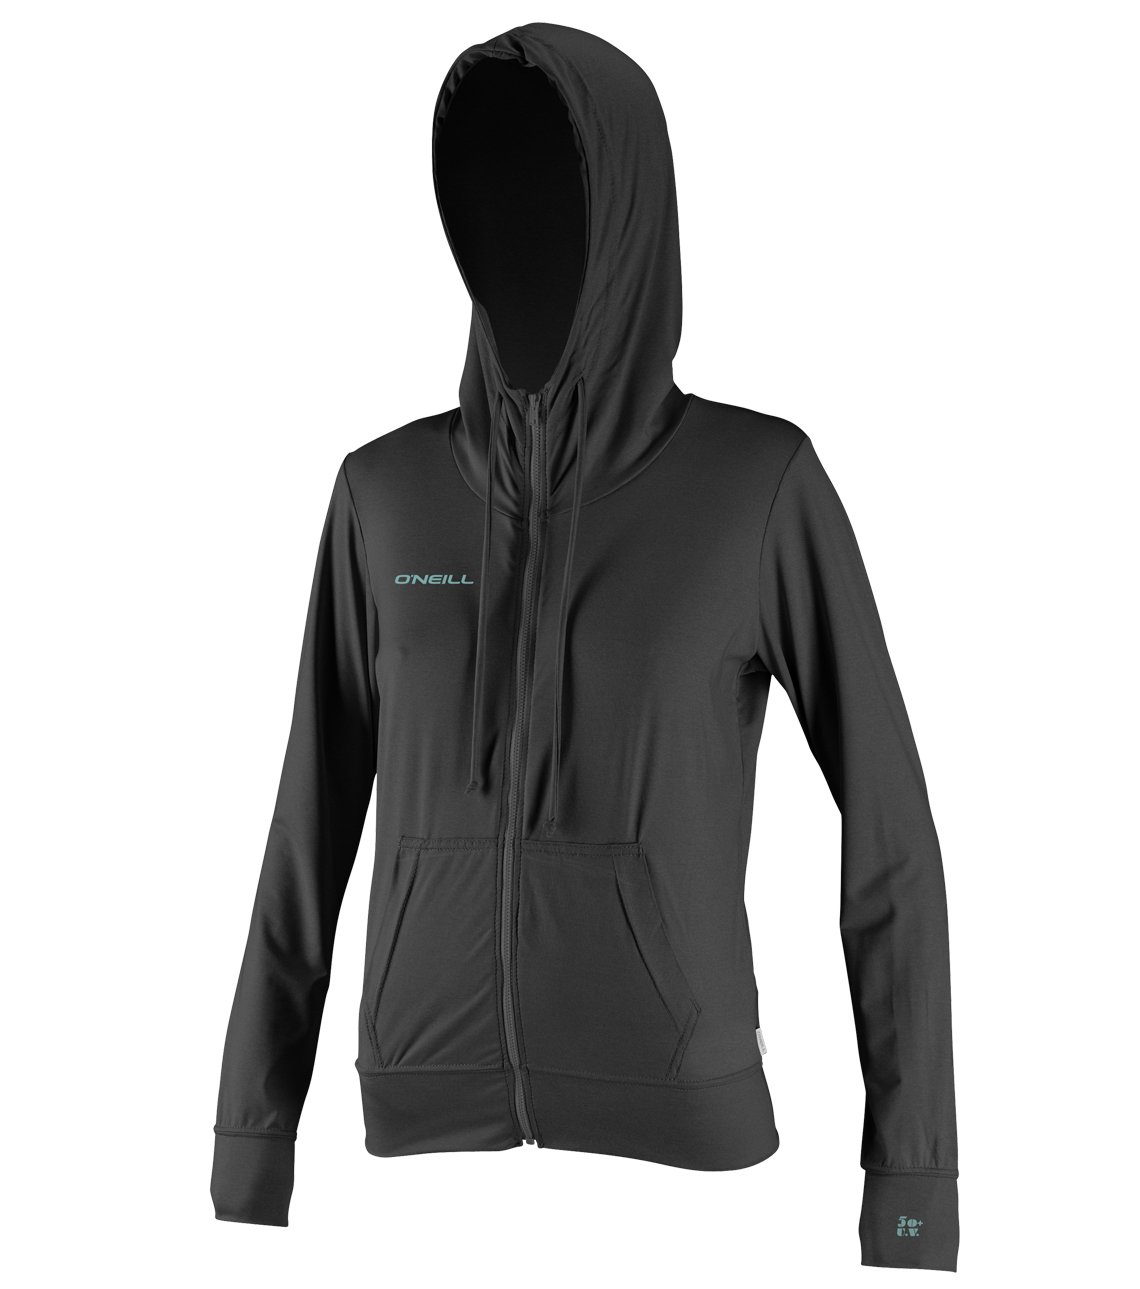 O'Neill Wetsuits UV Sun Protection Womens 24-7 Hybrid Zip Hoodie Sun Shirt Rash Guard, Graphite, Small